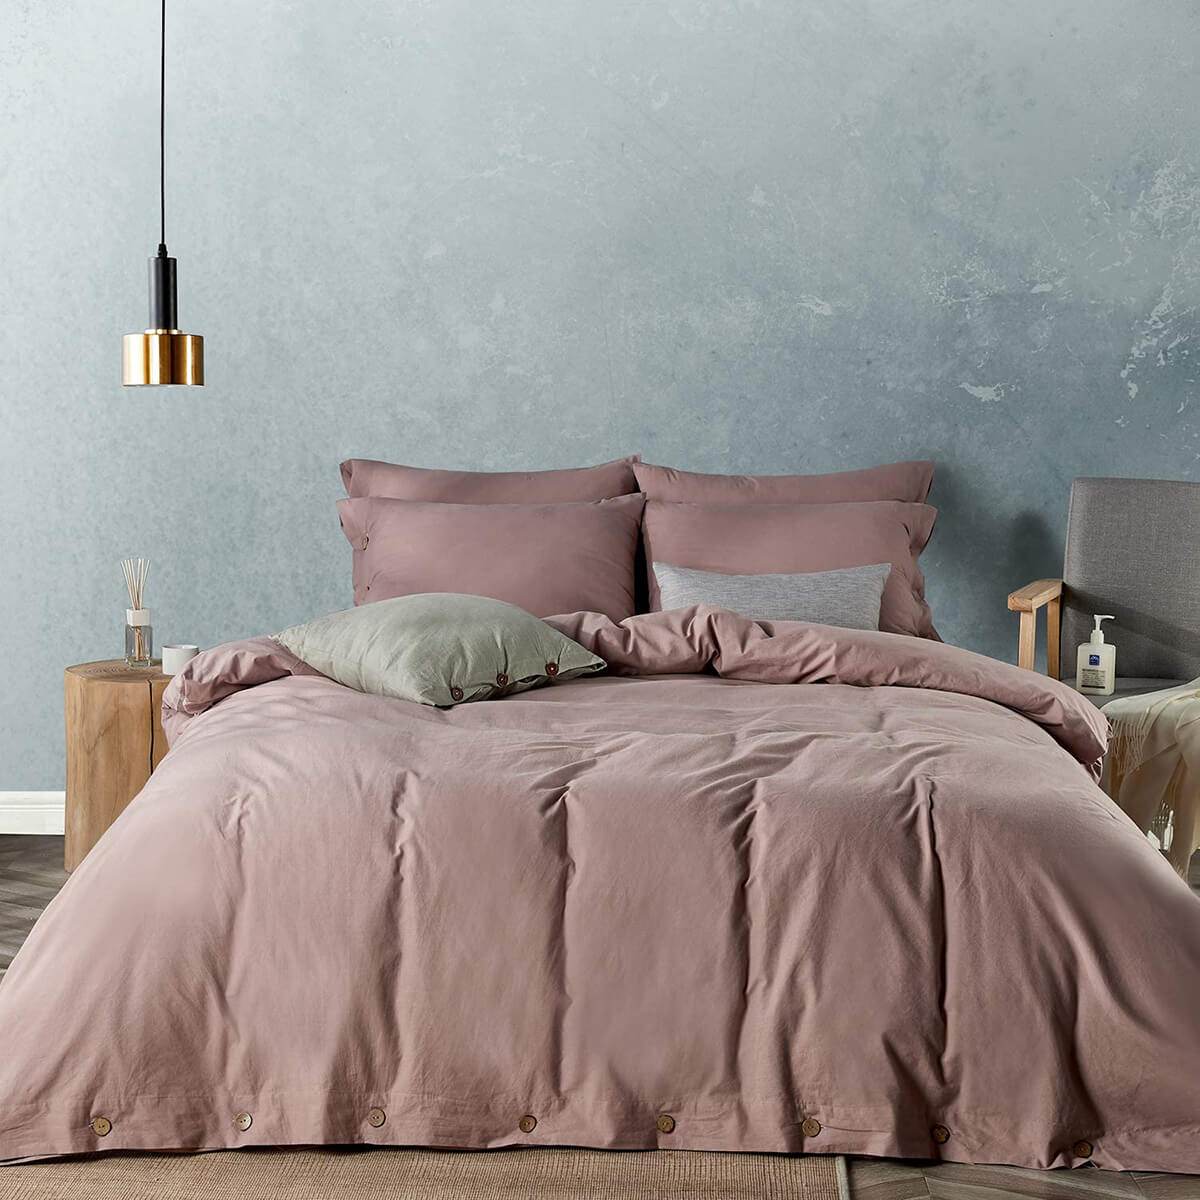 Dusty Rose Earth Tone Bedroom Design